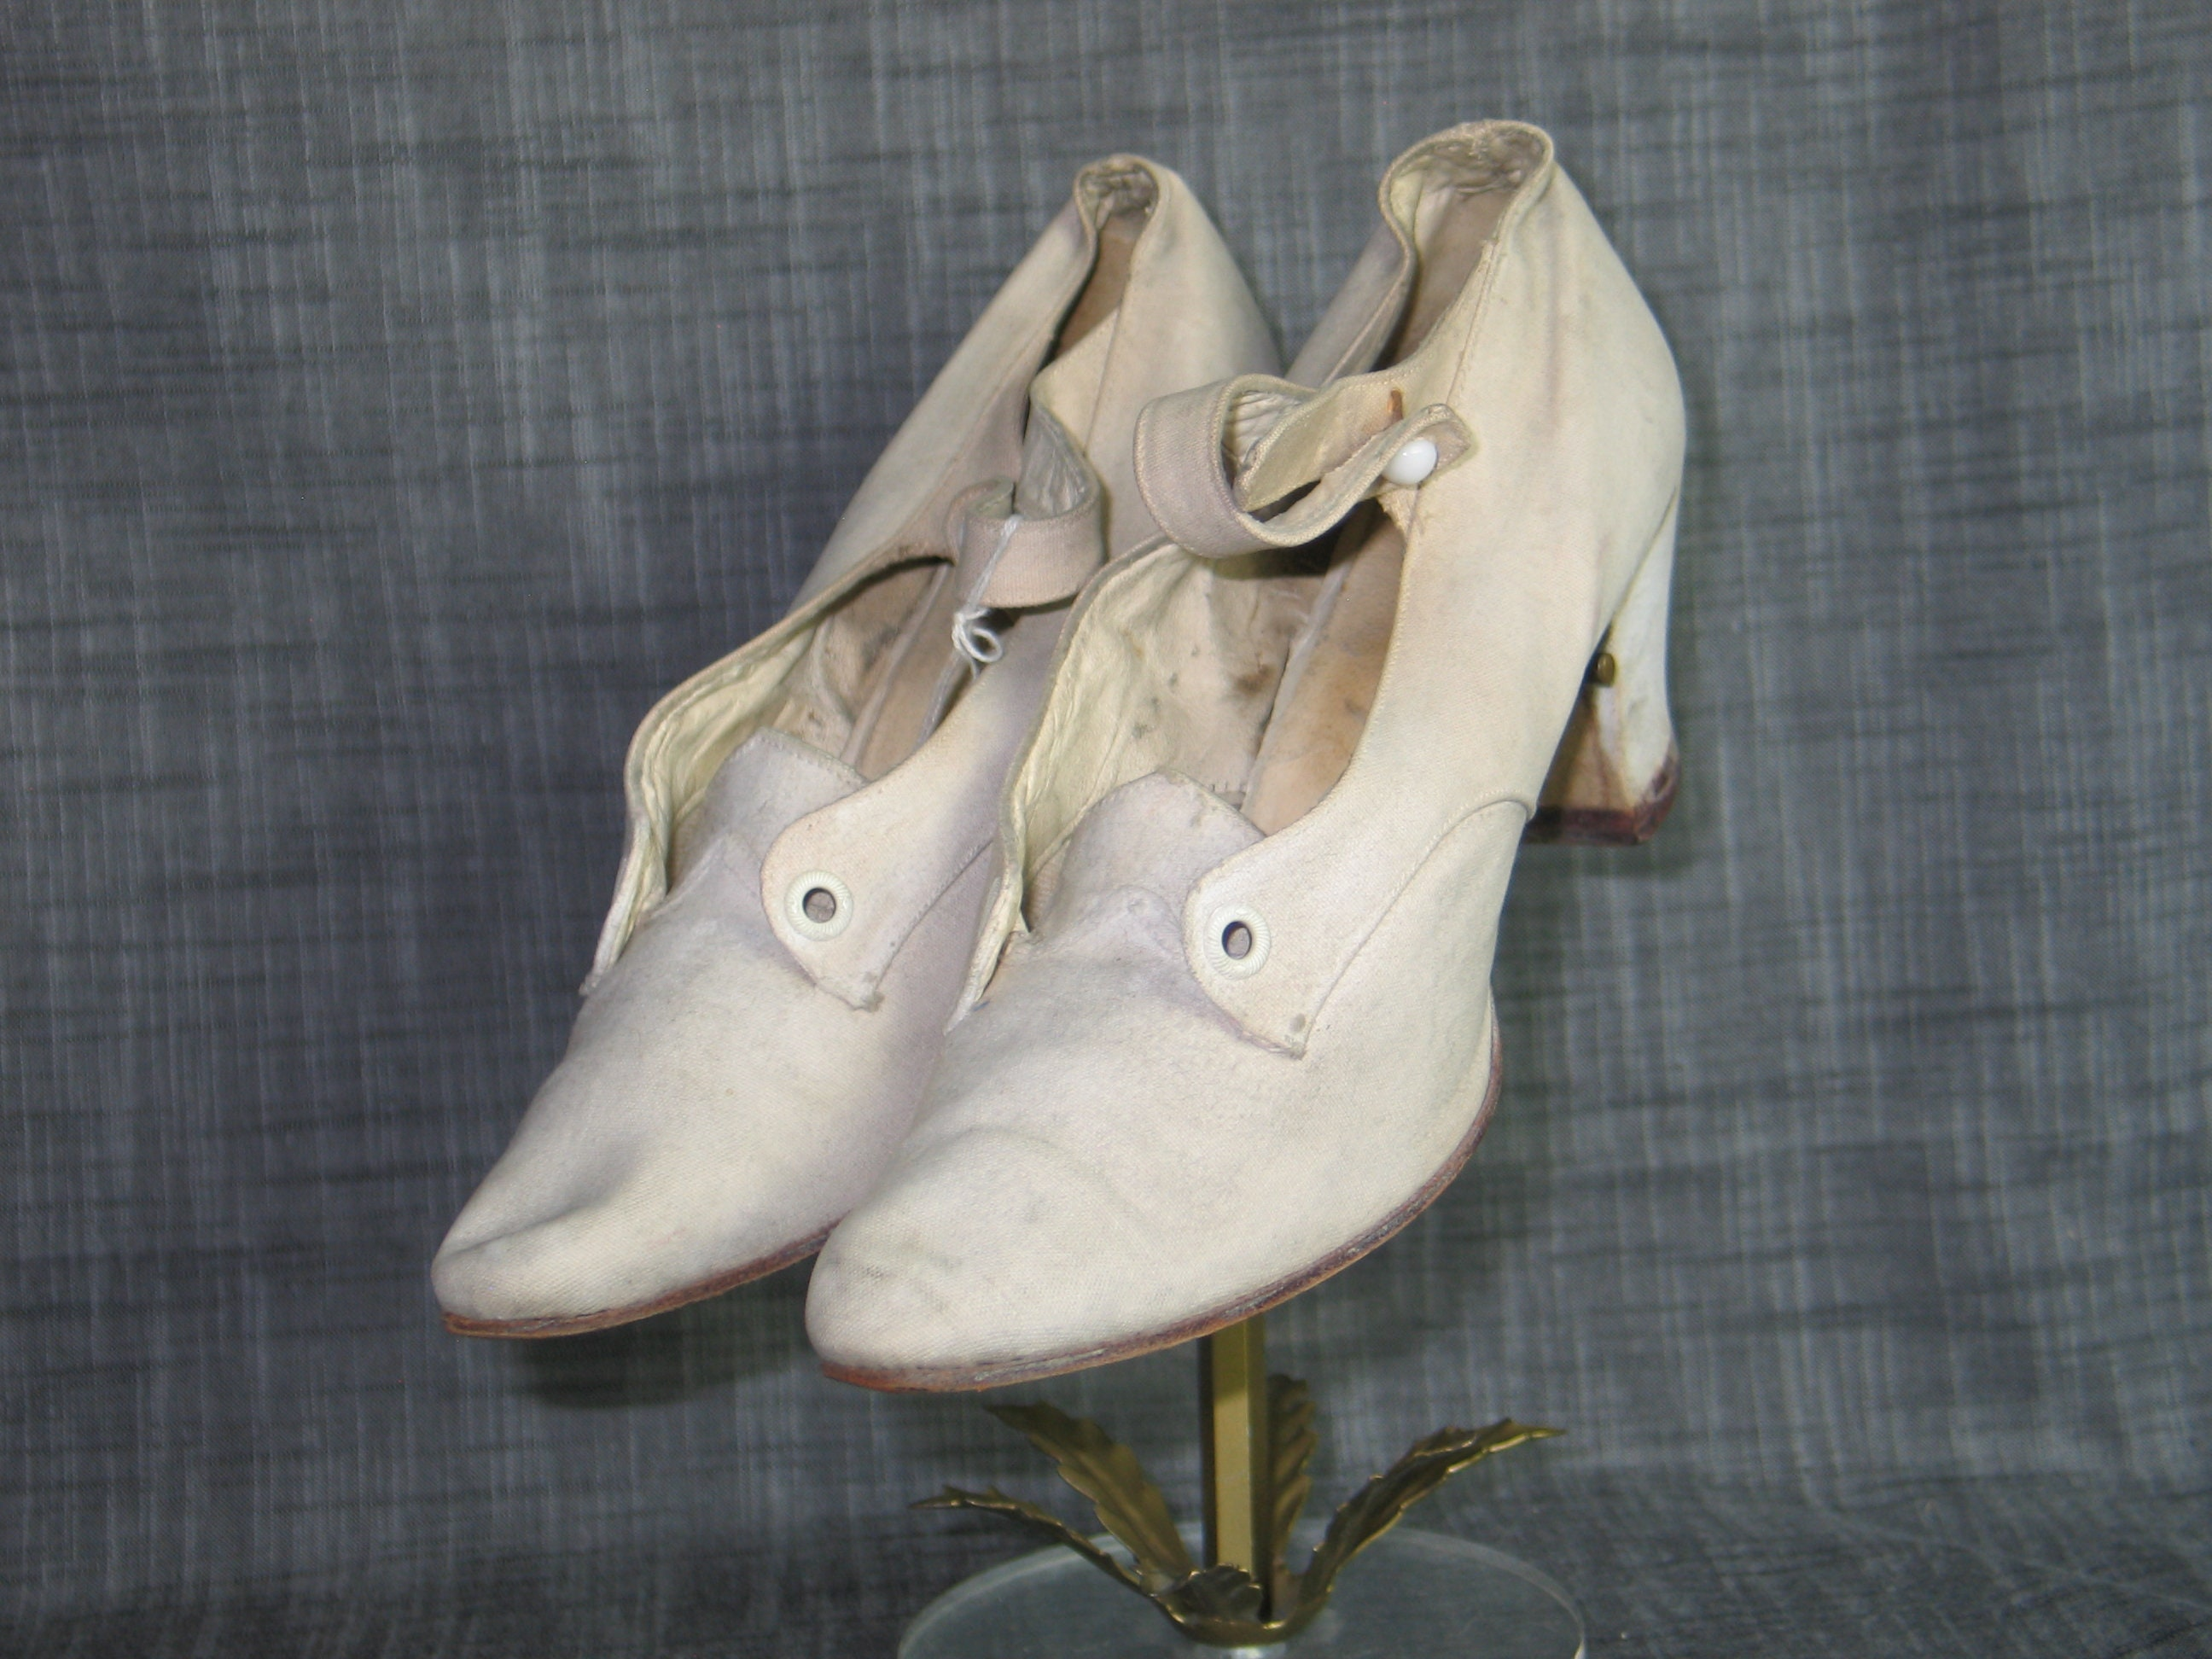 EXCEPTIONAL Antique Edwardian Wedding Shoes- Wedding -WEDDING-Stage-Photo-Prop Slippers-1910-Womans White Leather/Canvas Shoes -WEDDING-Stage-Photo-Prop Wedding 323029